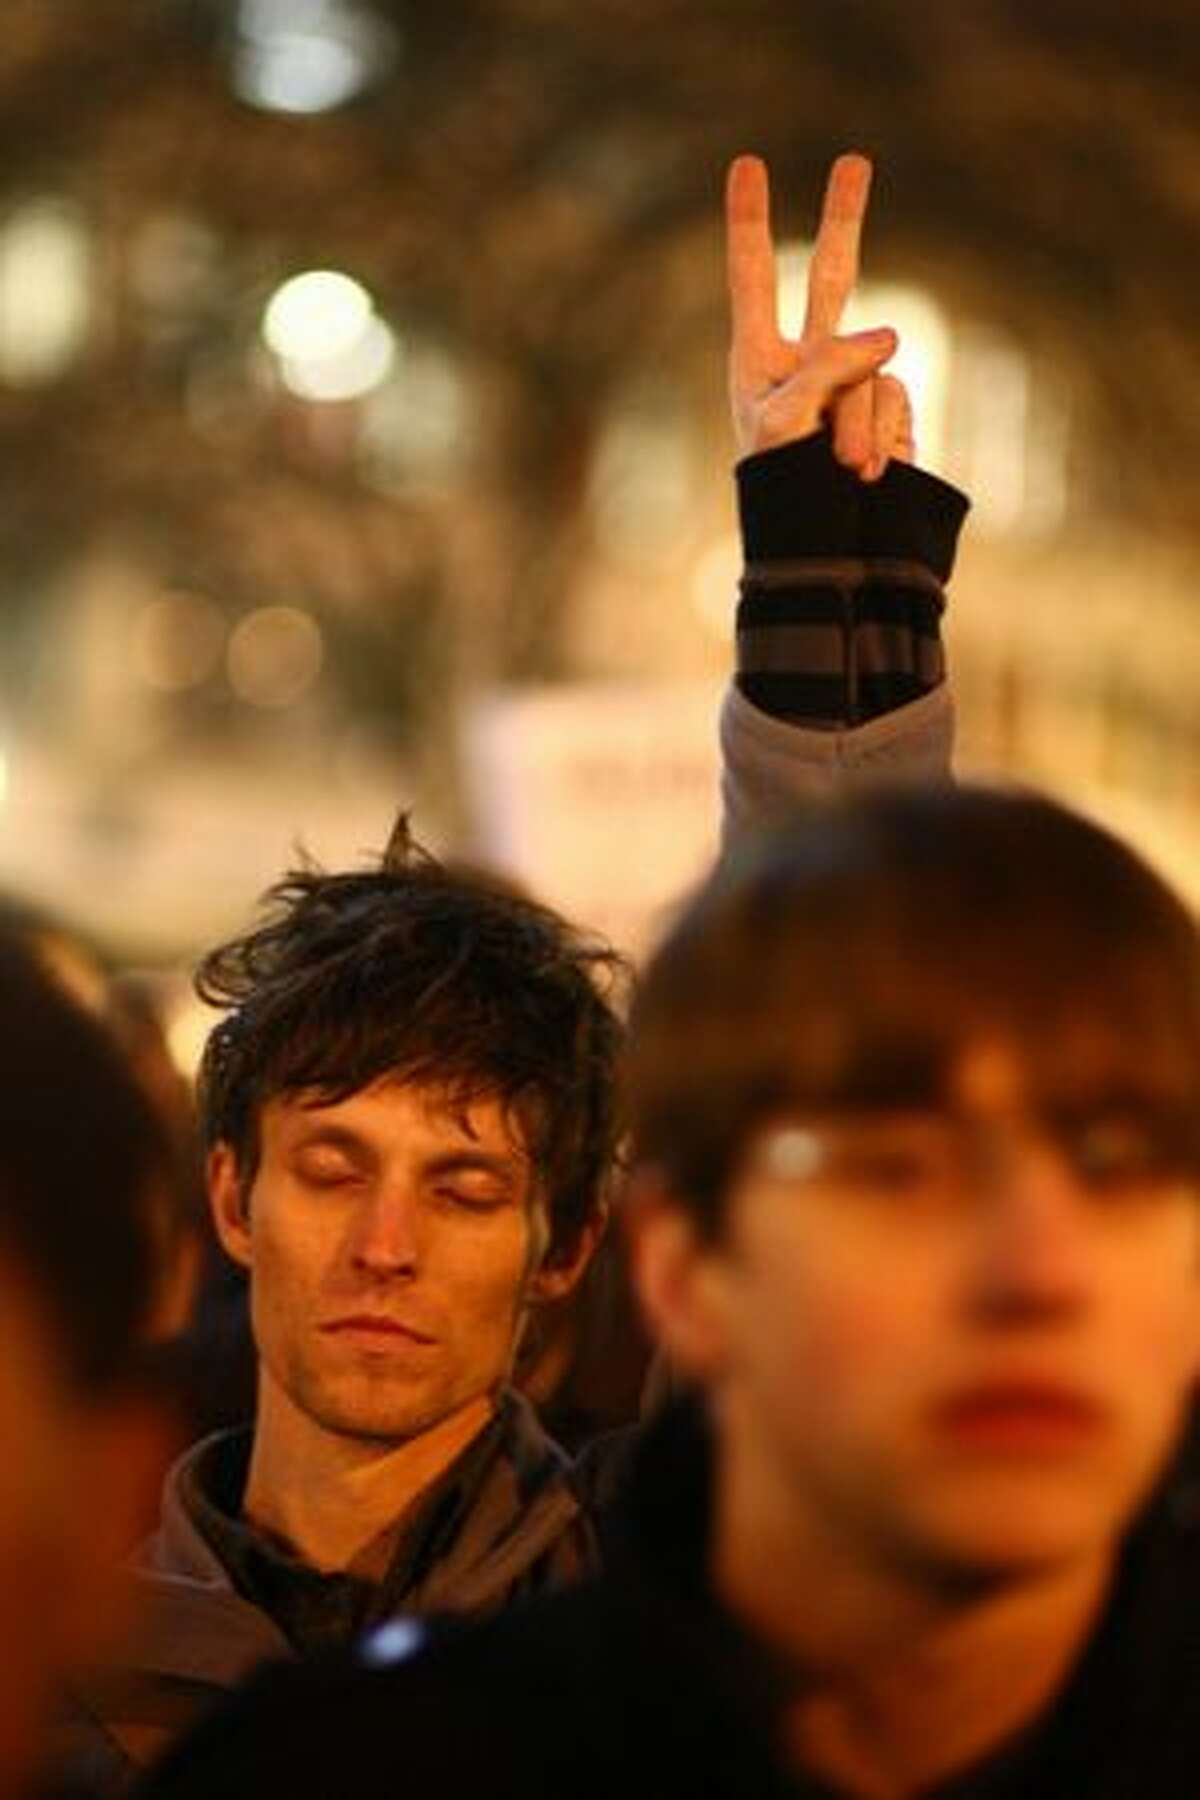 Adam Prometheus shows a peace sign as protesters gather at Westlake Park.